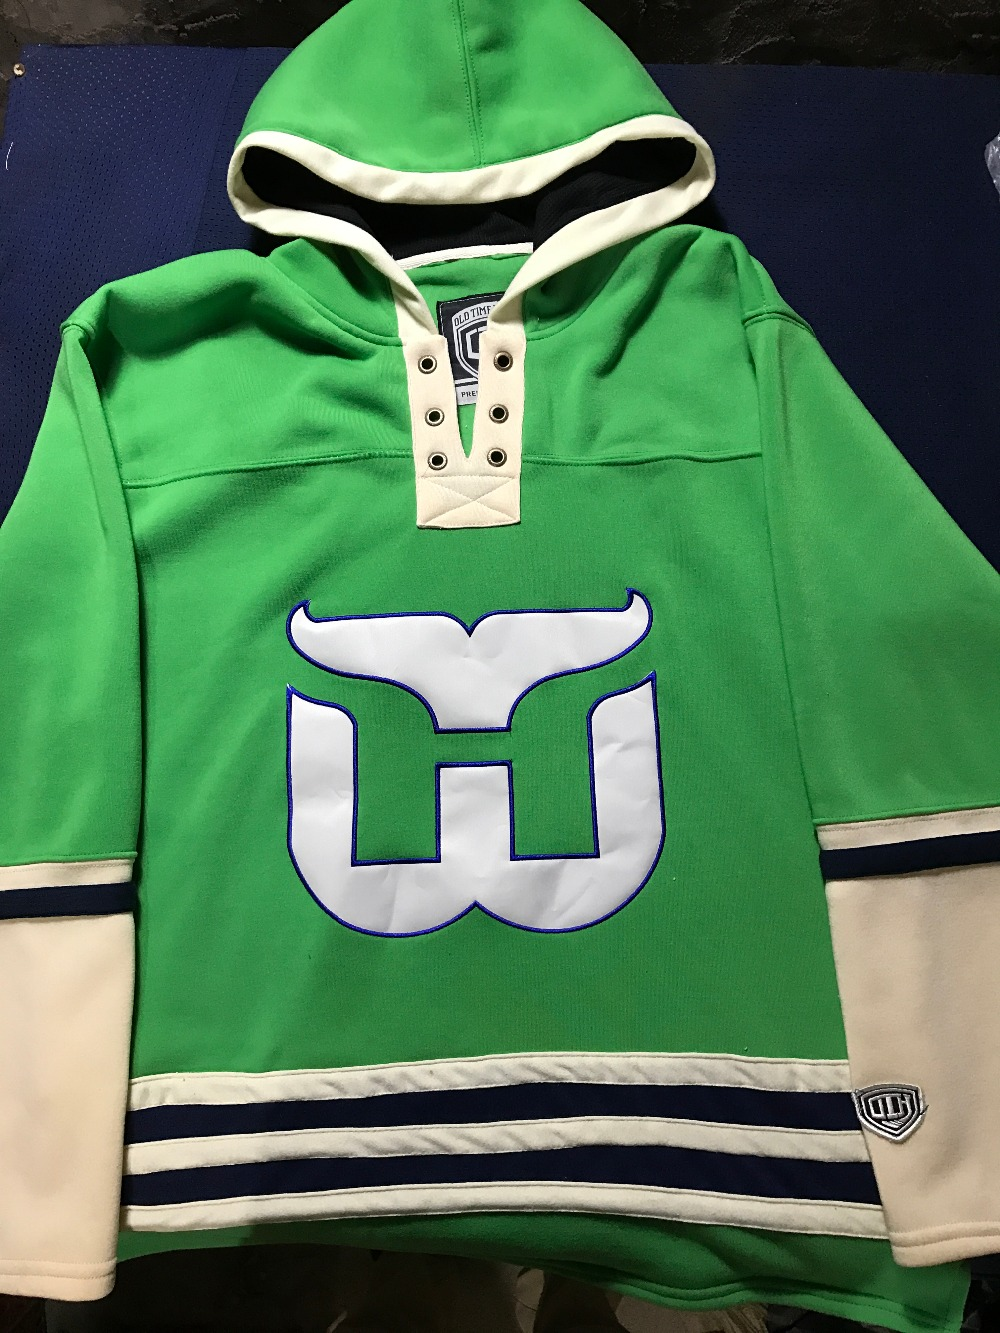 Throwback Hockey Jersey Customize Any Name Any Number High Quality Stitched Men Hoodie Sweater Jerseys S-6XL mighty ducks hockey jersey customized any name any number high quality stitched logos throwback ice hockey jersey s 4xl